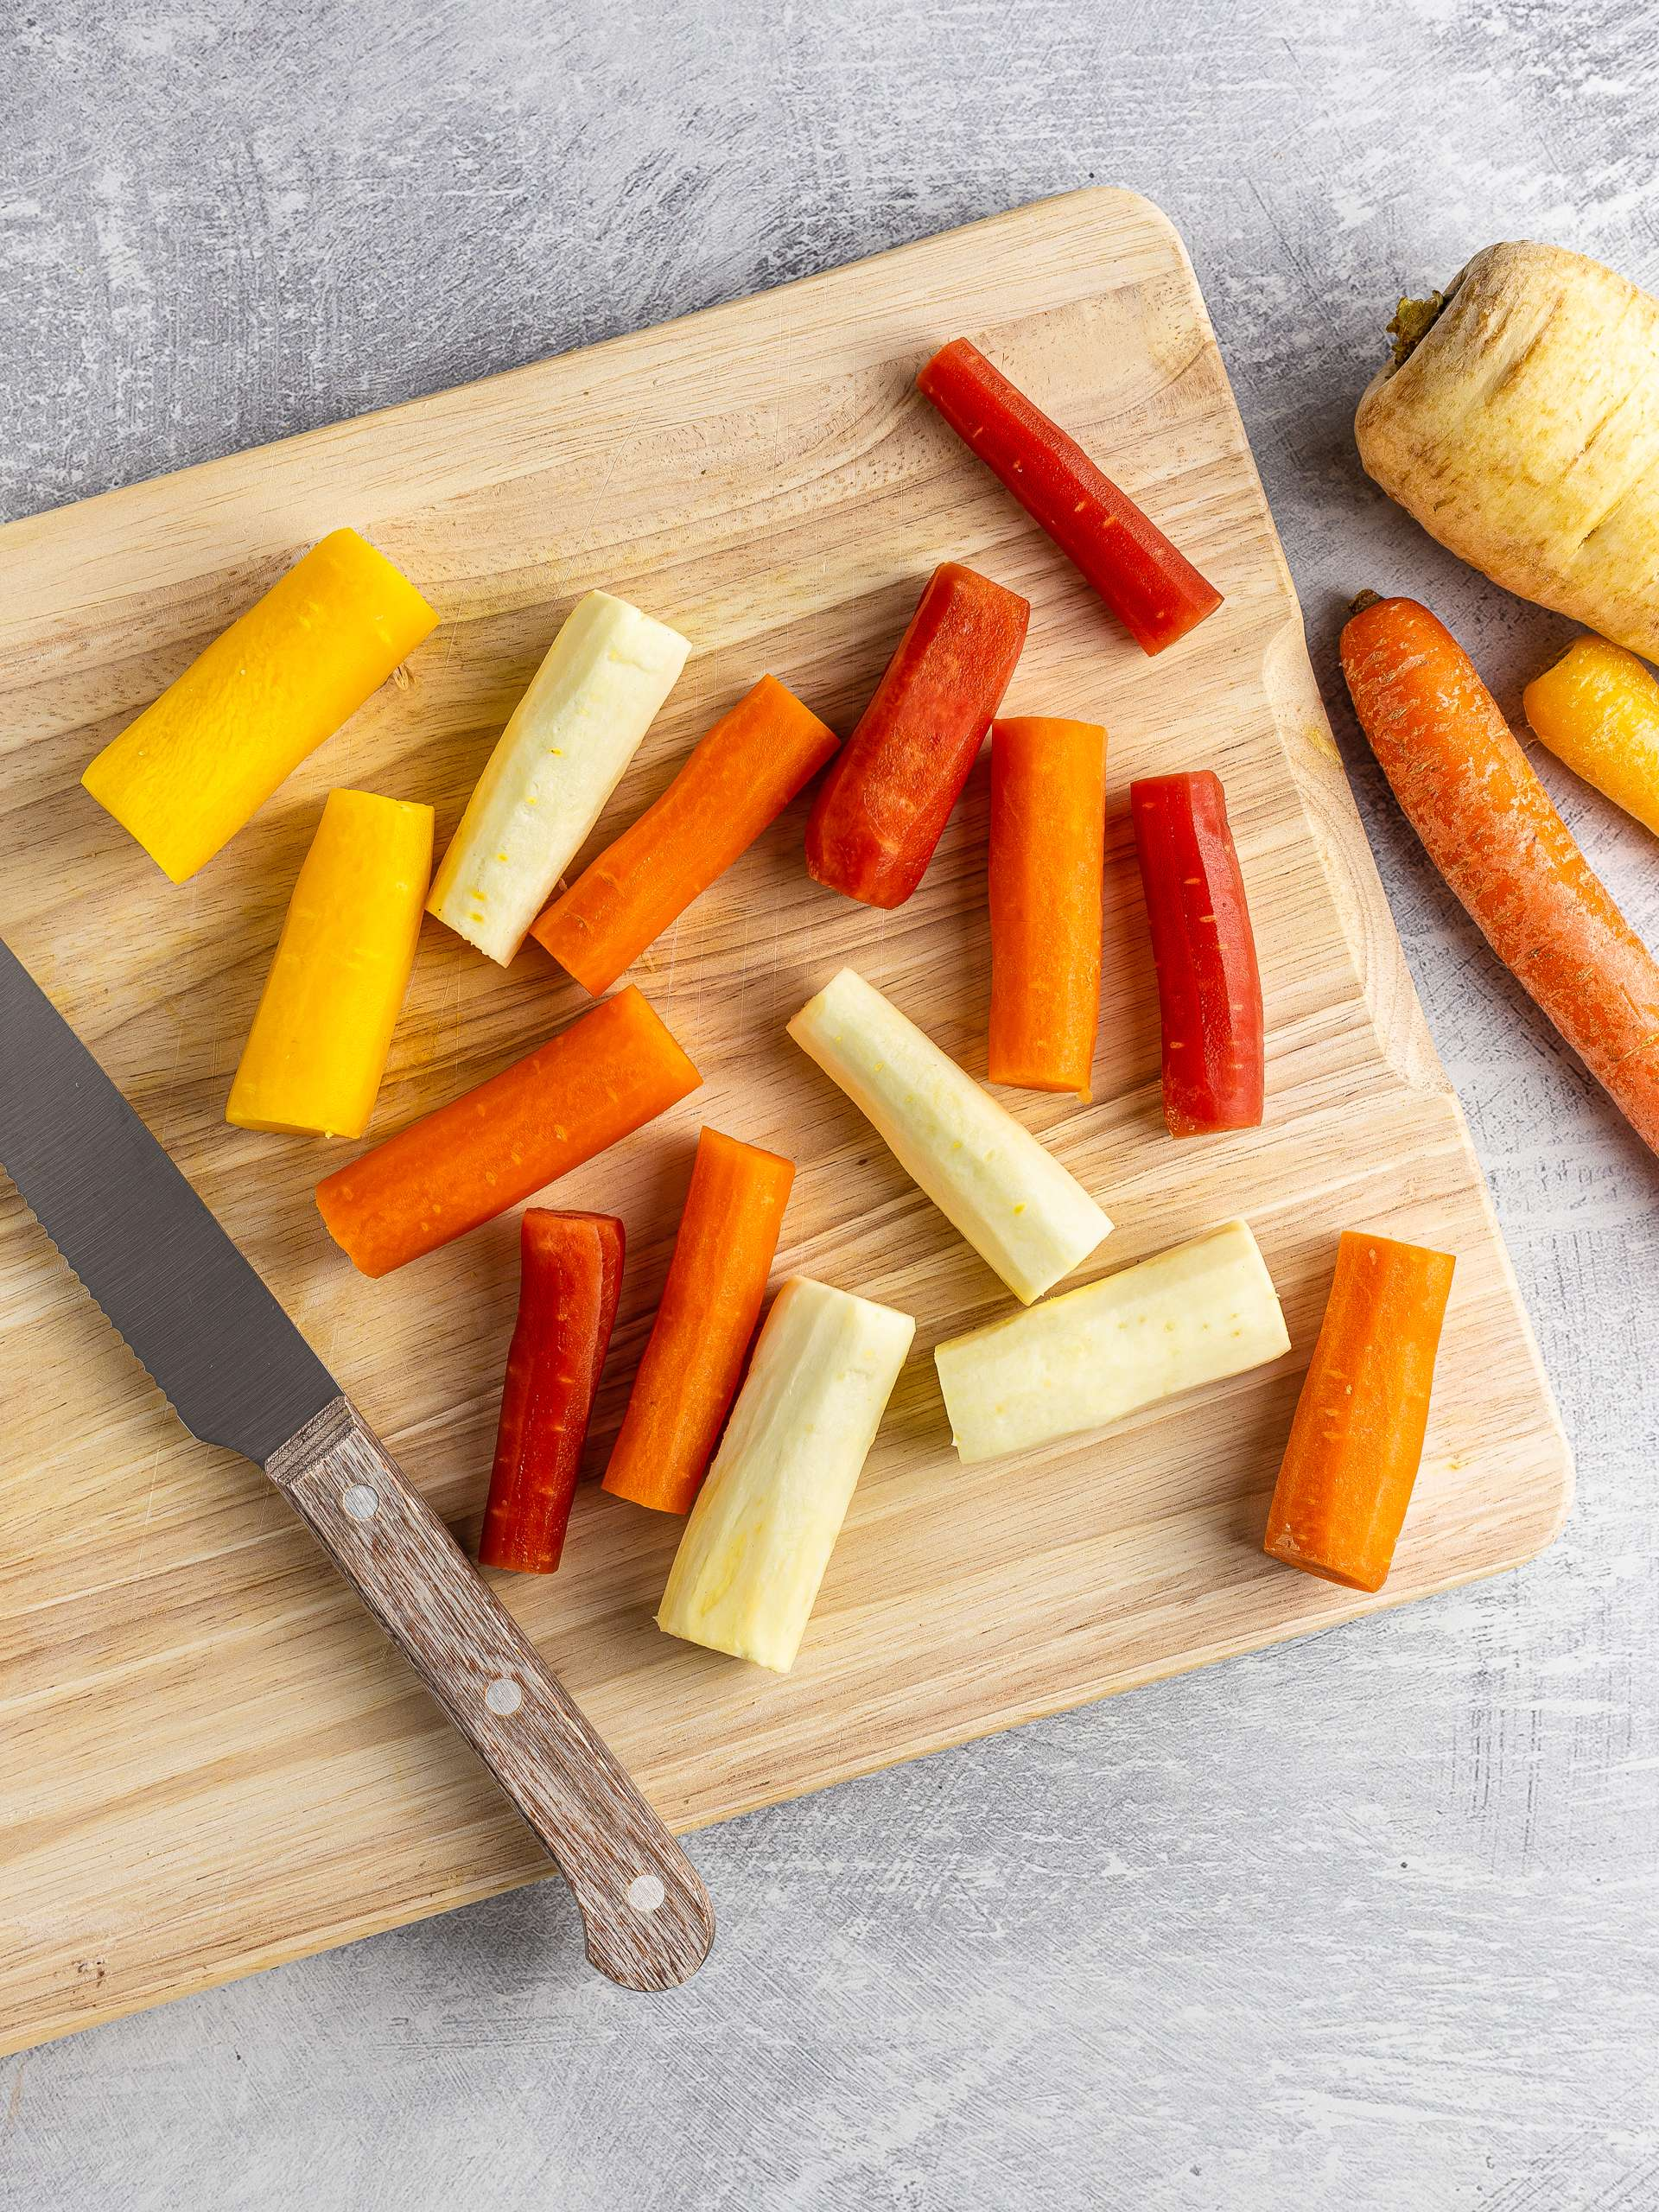 carrot and parsnips sticks